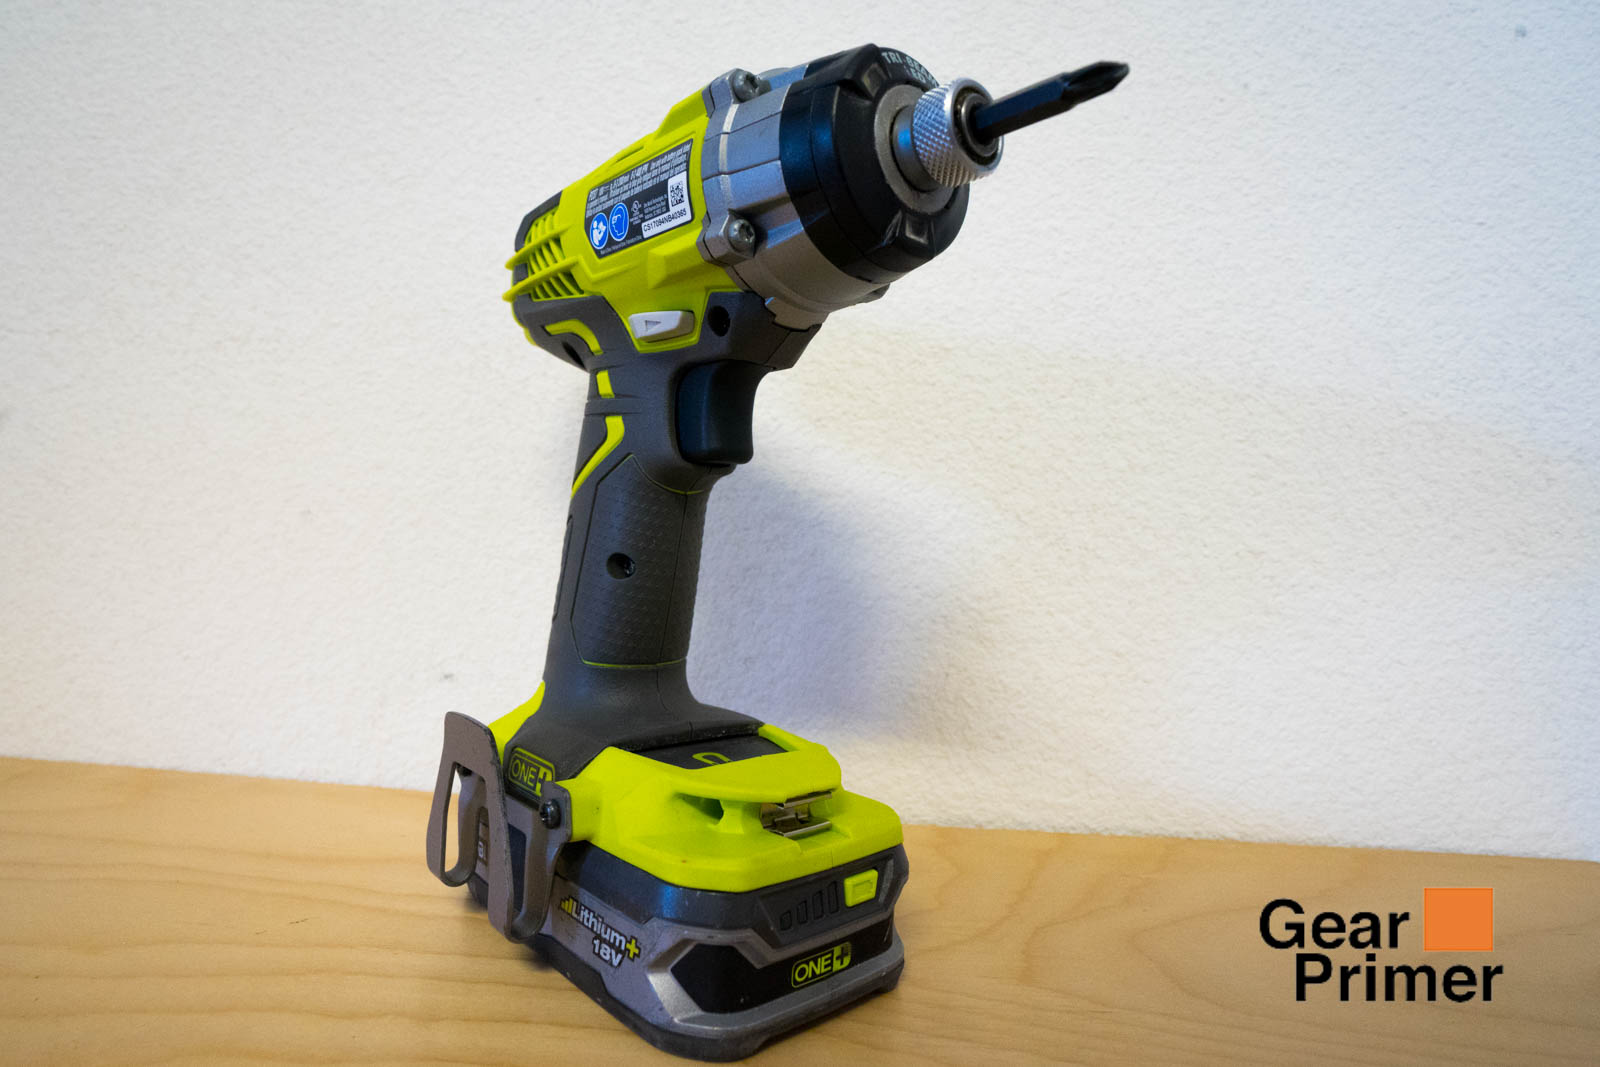 Ryobi P237 Review | Impact Driver | 18 Volt ONE+ 3-Speed 7